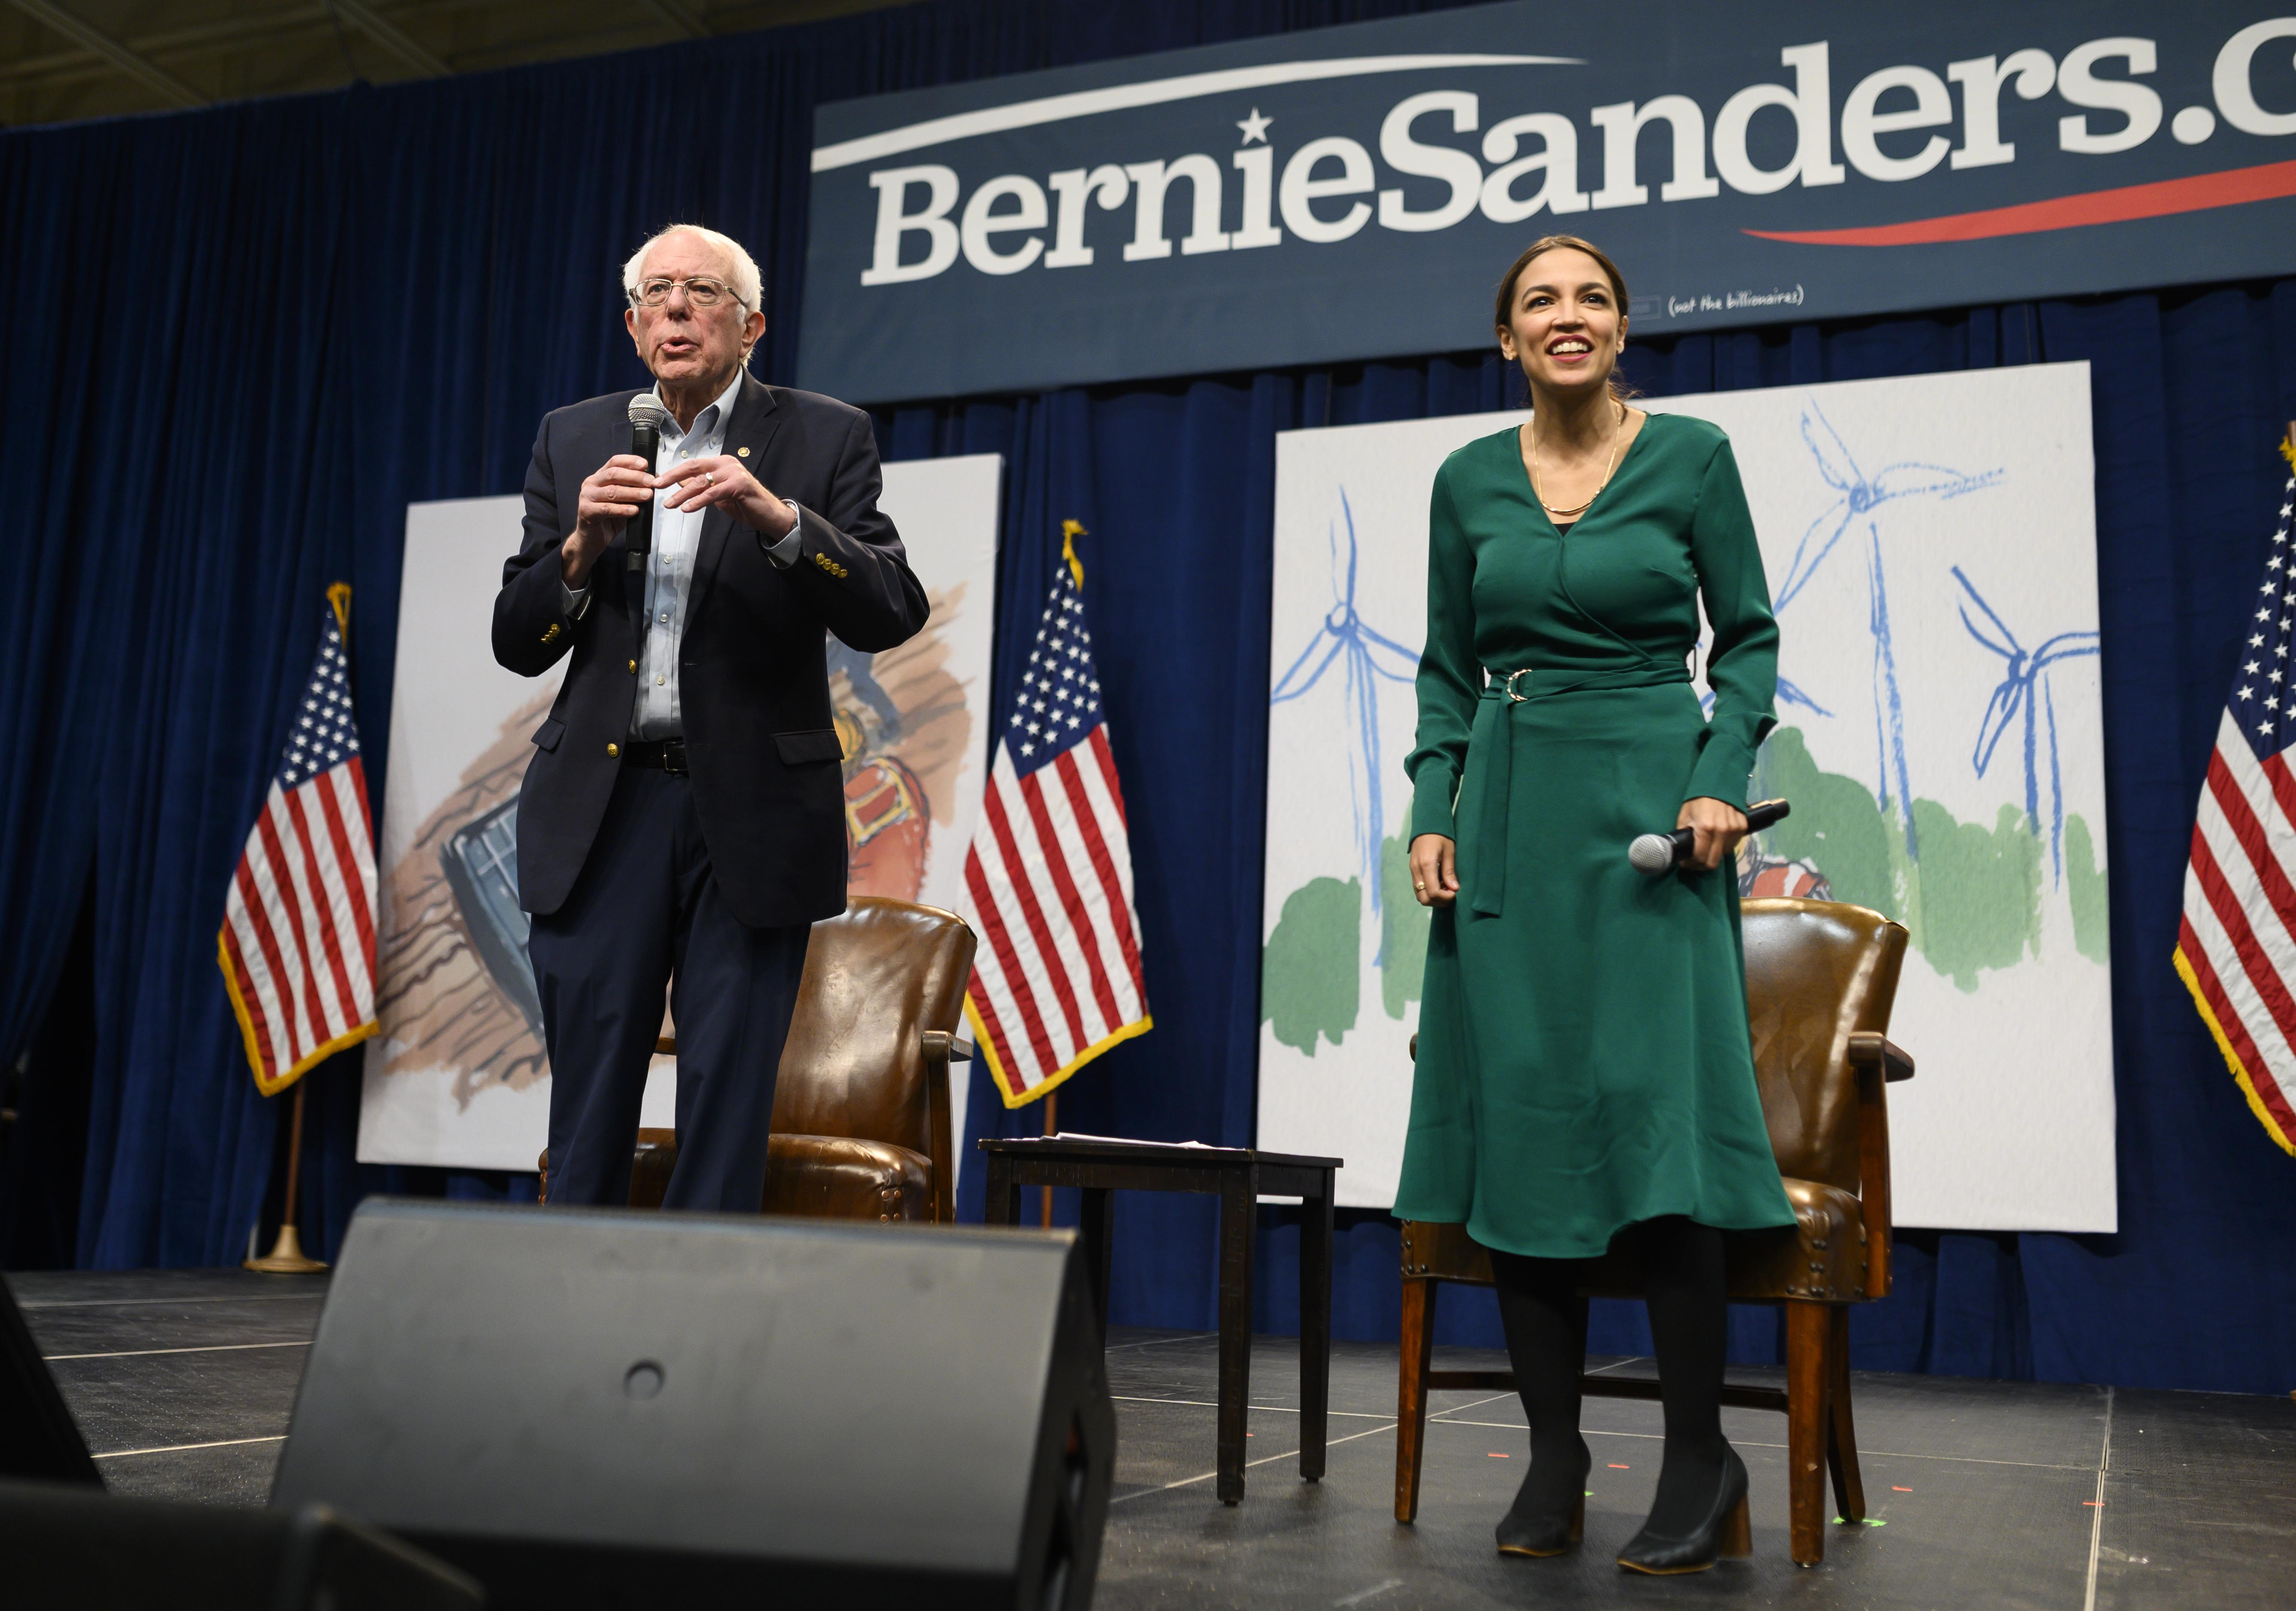 """Democratic presidential candidate Bernie Sanders and Rep. Alexandria Okazio-Cortez field questions from members of the audience at the Drake University Summit on Climate Change on November 9, 201<div class=""""e3lan e3lan-in-post1""""><script async src=""""//pagead2.googlesyndication.com/pagead/js/adsbygoogle.js""""></script> <!-- Text_Image --> <ins class=""""adsbygoogle""""      style=""""display:block""""      data-ad-client=""""ca-pub-7122614041285563""""      data-ad-slot=""""2268374881""""      data-ad-format=""""auto""""      data-full-width-responsive=""""true""""></ins> <script> (adsbygoogle = window.adsbygoogle 